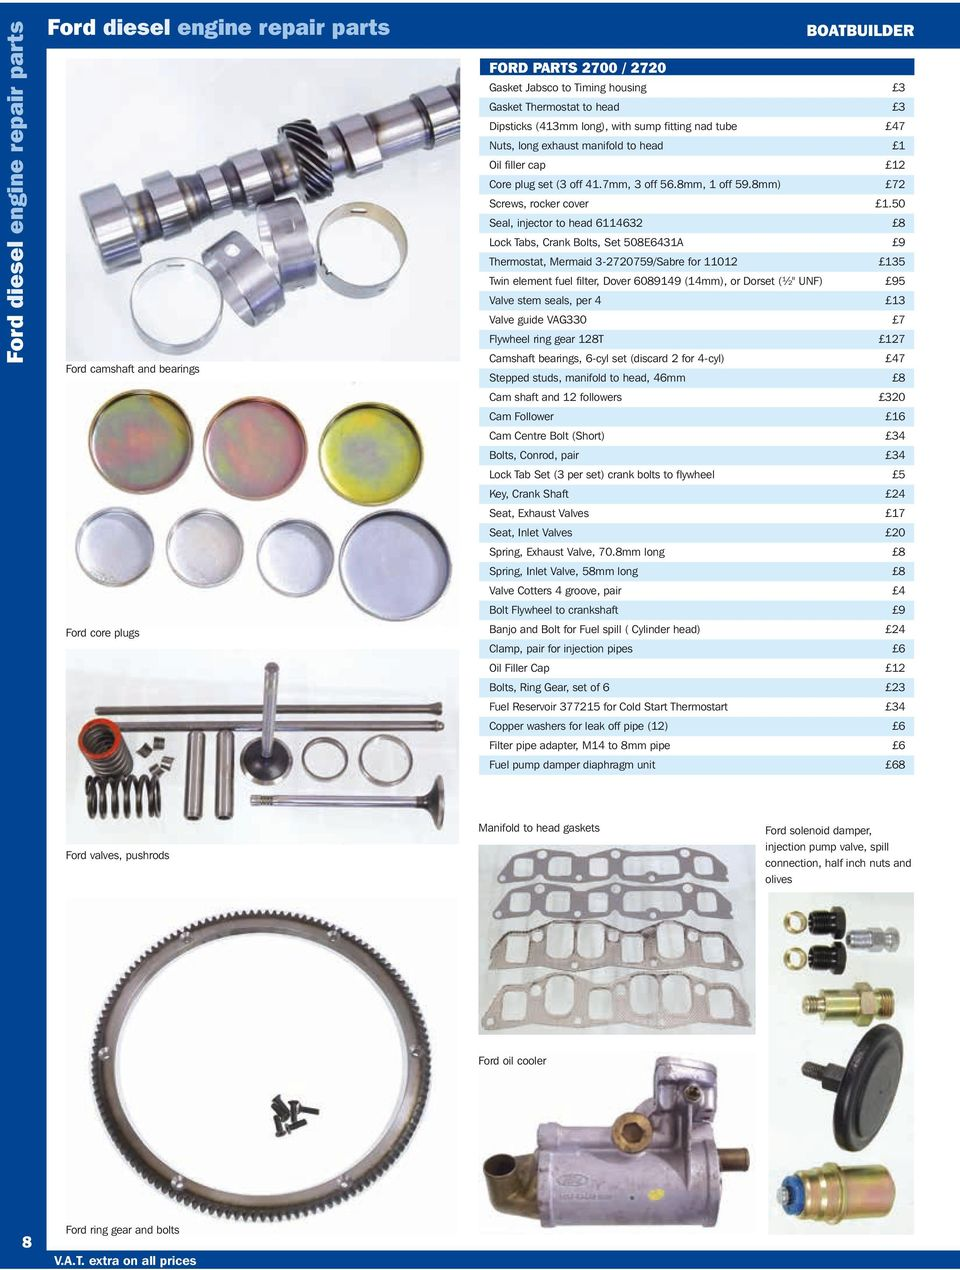 Get Expert Advice From Practical Engineers Pricebook The Discount Ford 7 3 Fuel Filter Assy 50 Seal Injector To Head 6114632 8 Lock Tabs Crank Bolts Set 508e6431a